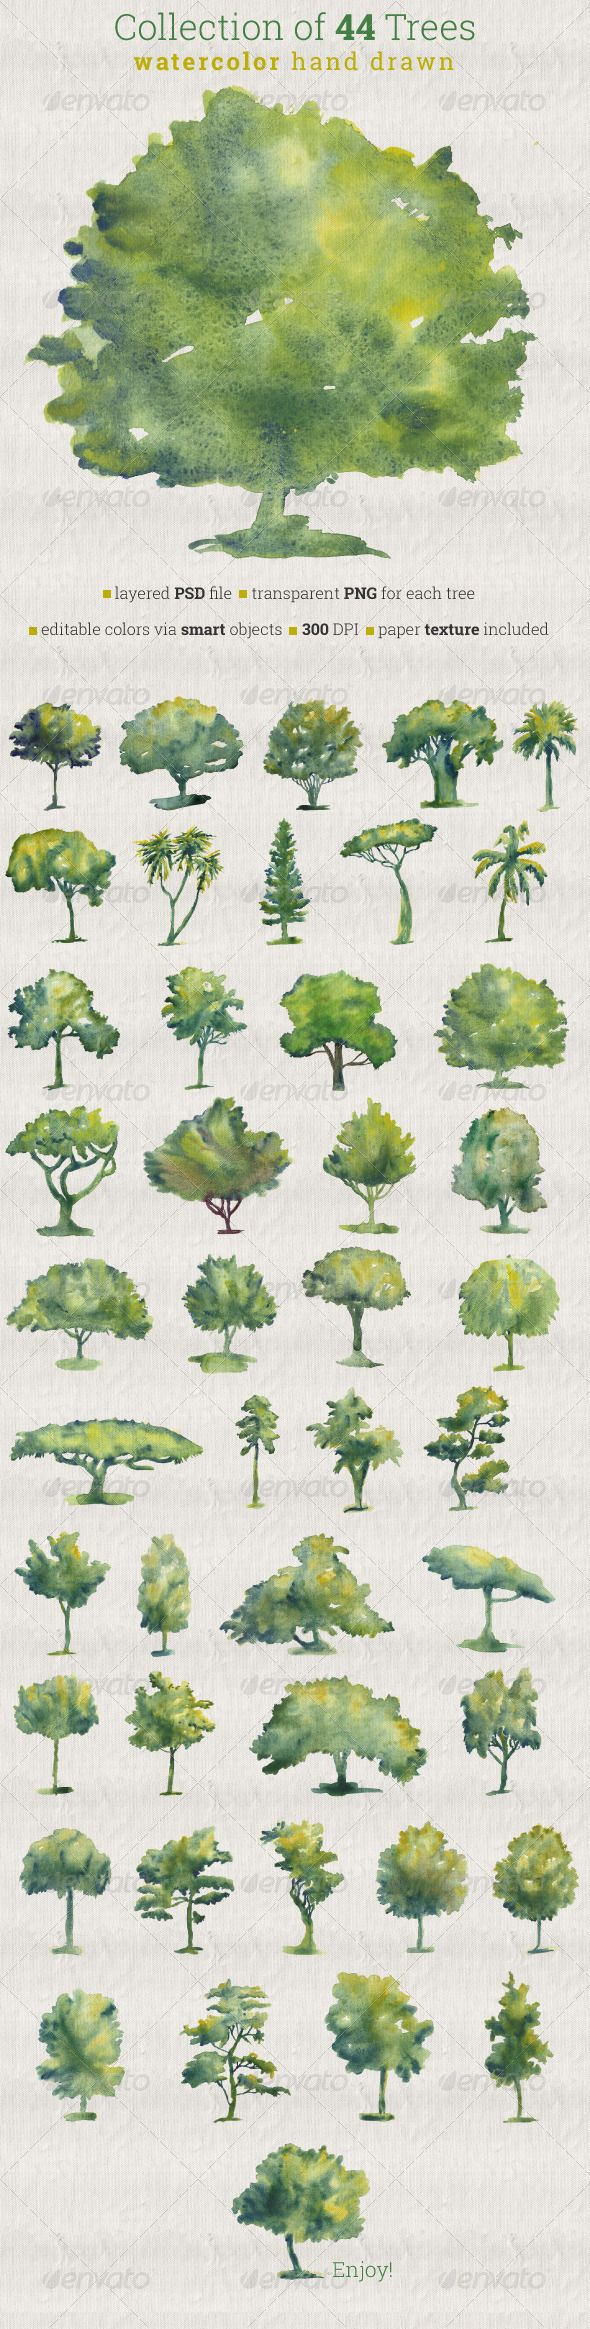 Collection of 44 Watercolor Trees